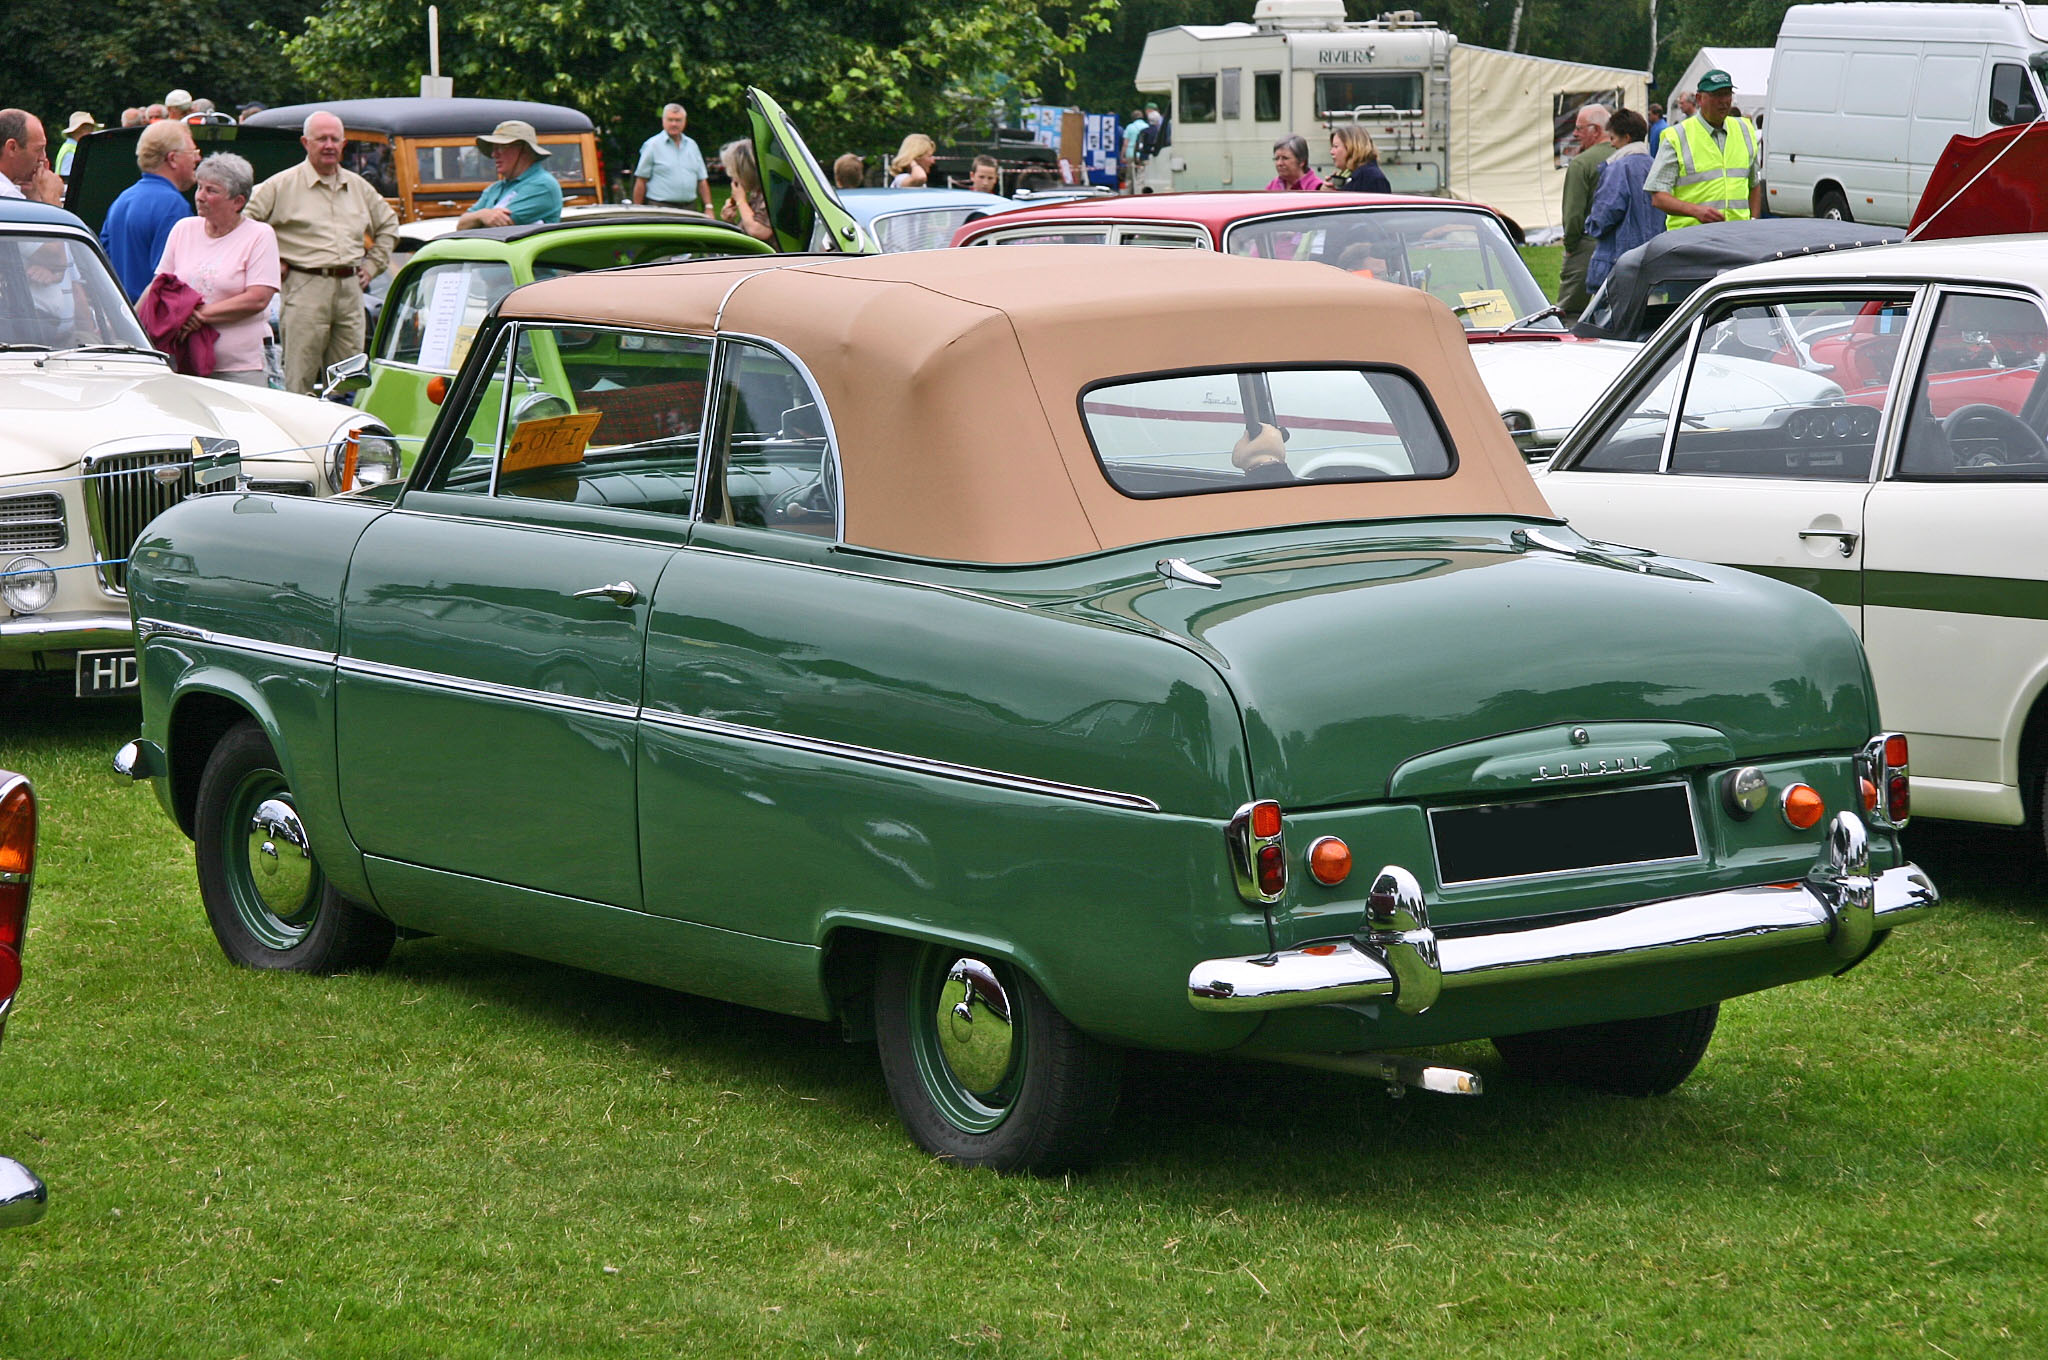 file ford consul mki convertible wikimedia commons. Black Bedroom Furniture Sets. Home Design Ideas